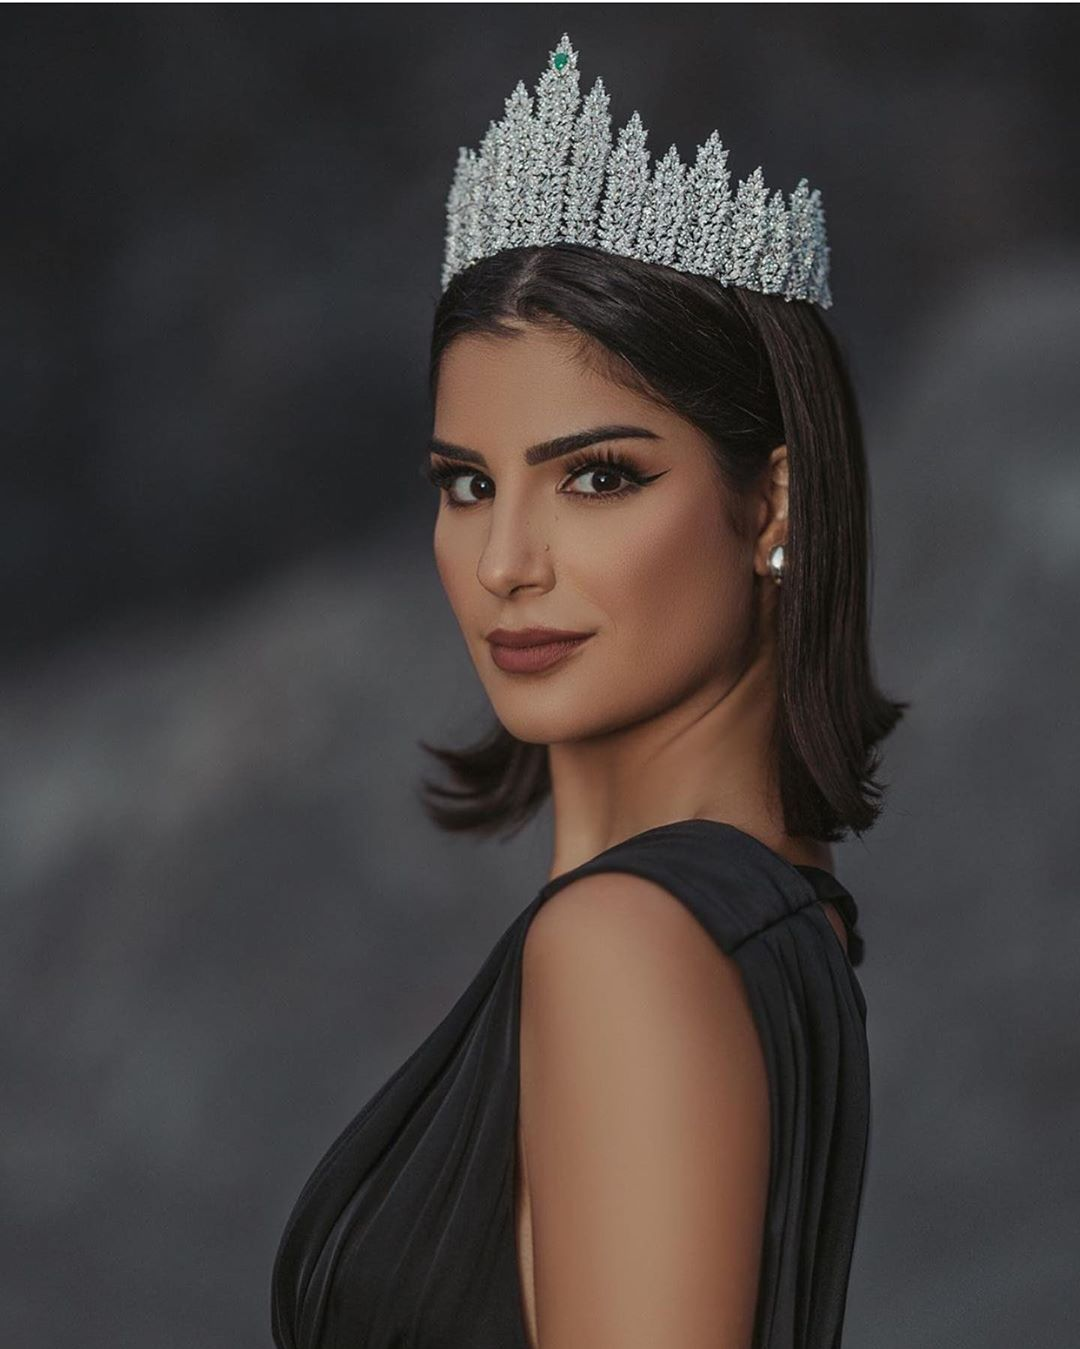 julia horta, miss brasil universo 2019/top 2 de reynado internacional cafe 2016, top 5 de miss tourism international 2017. - Página 44 69171010